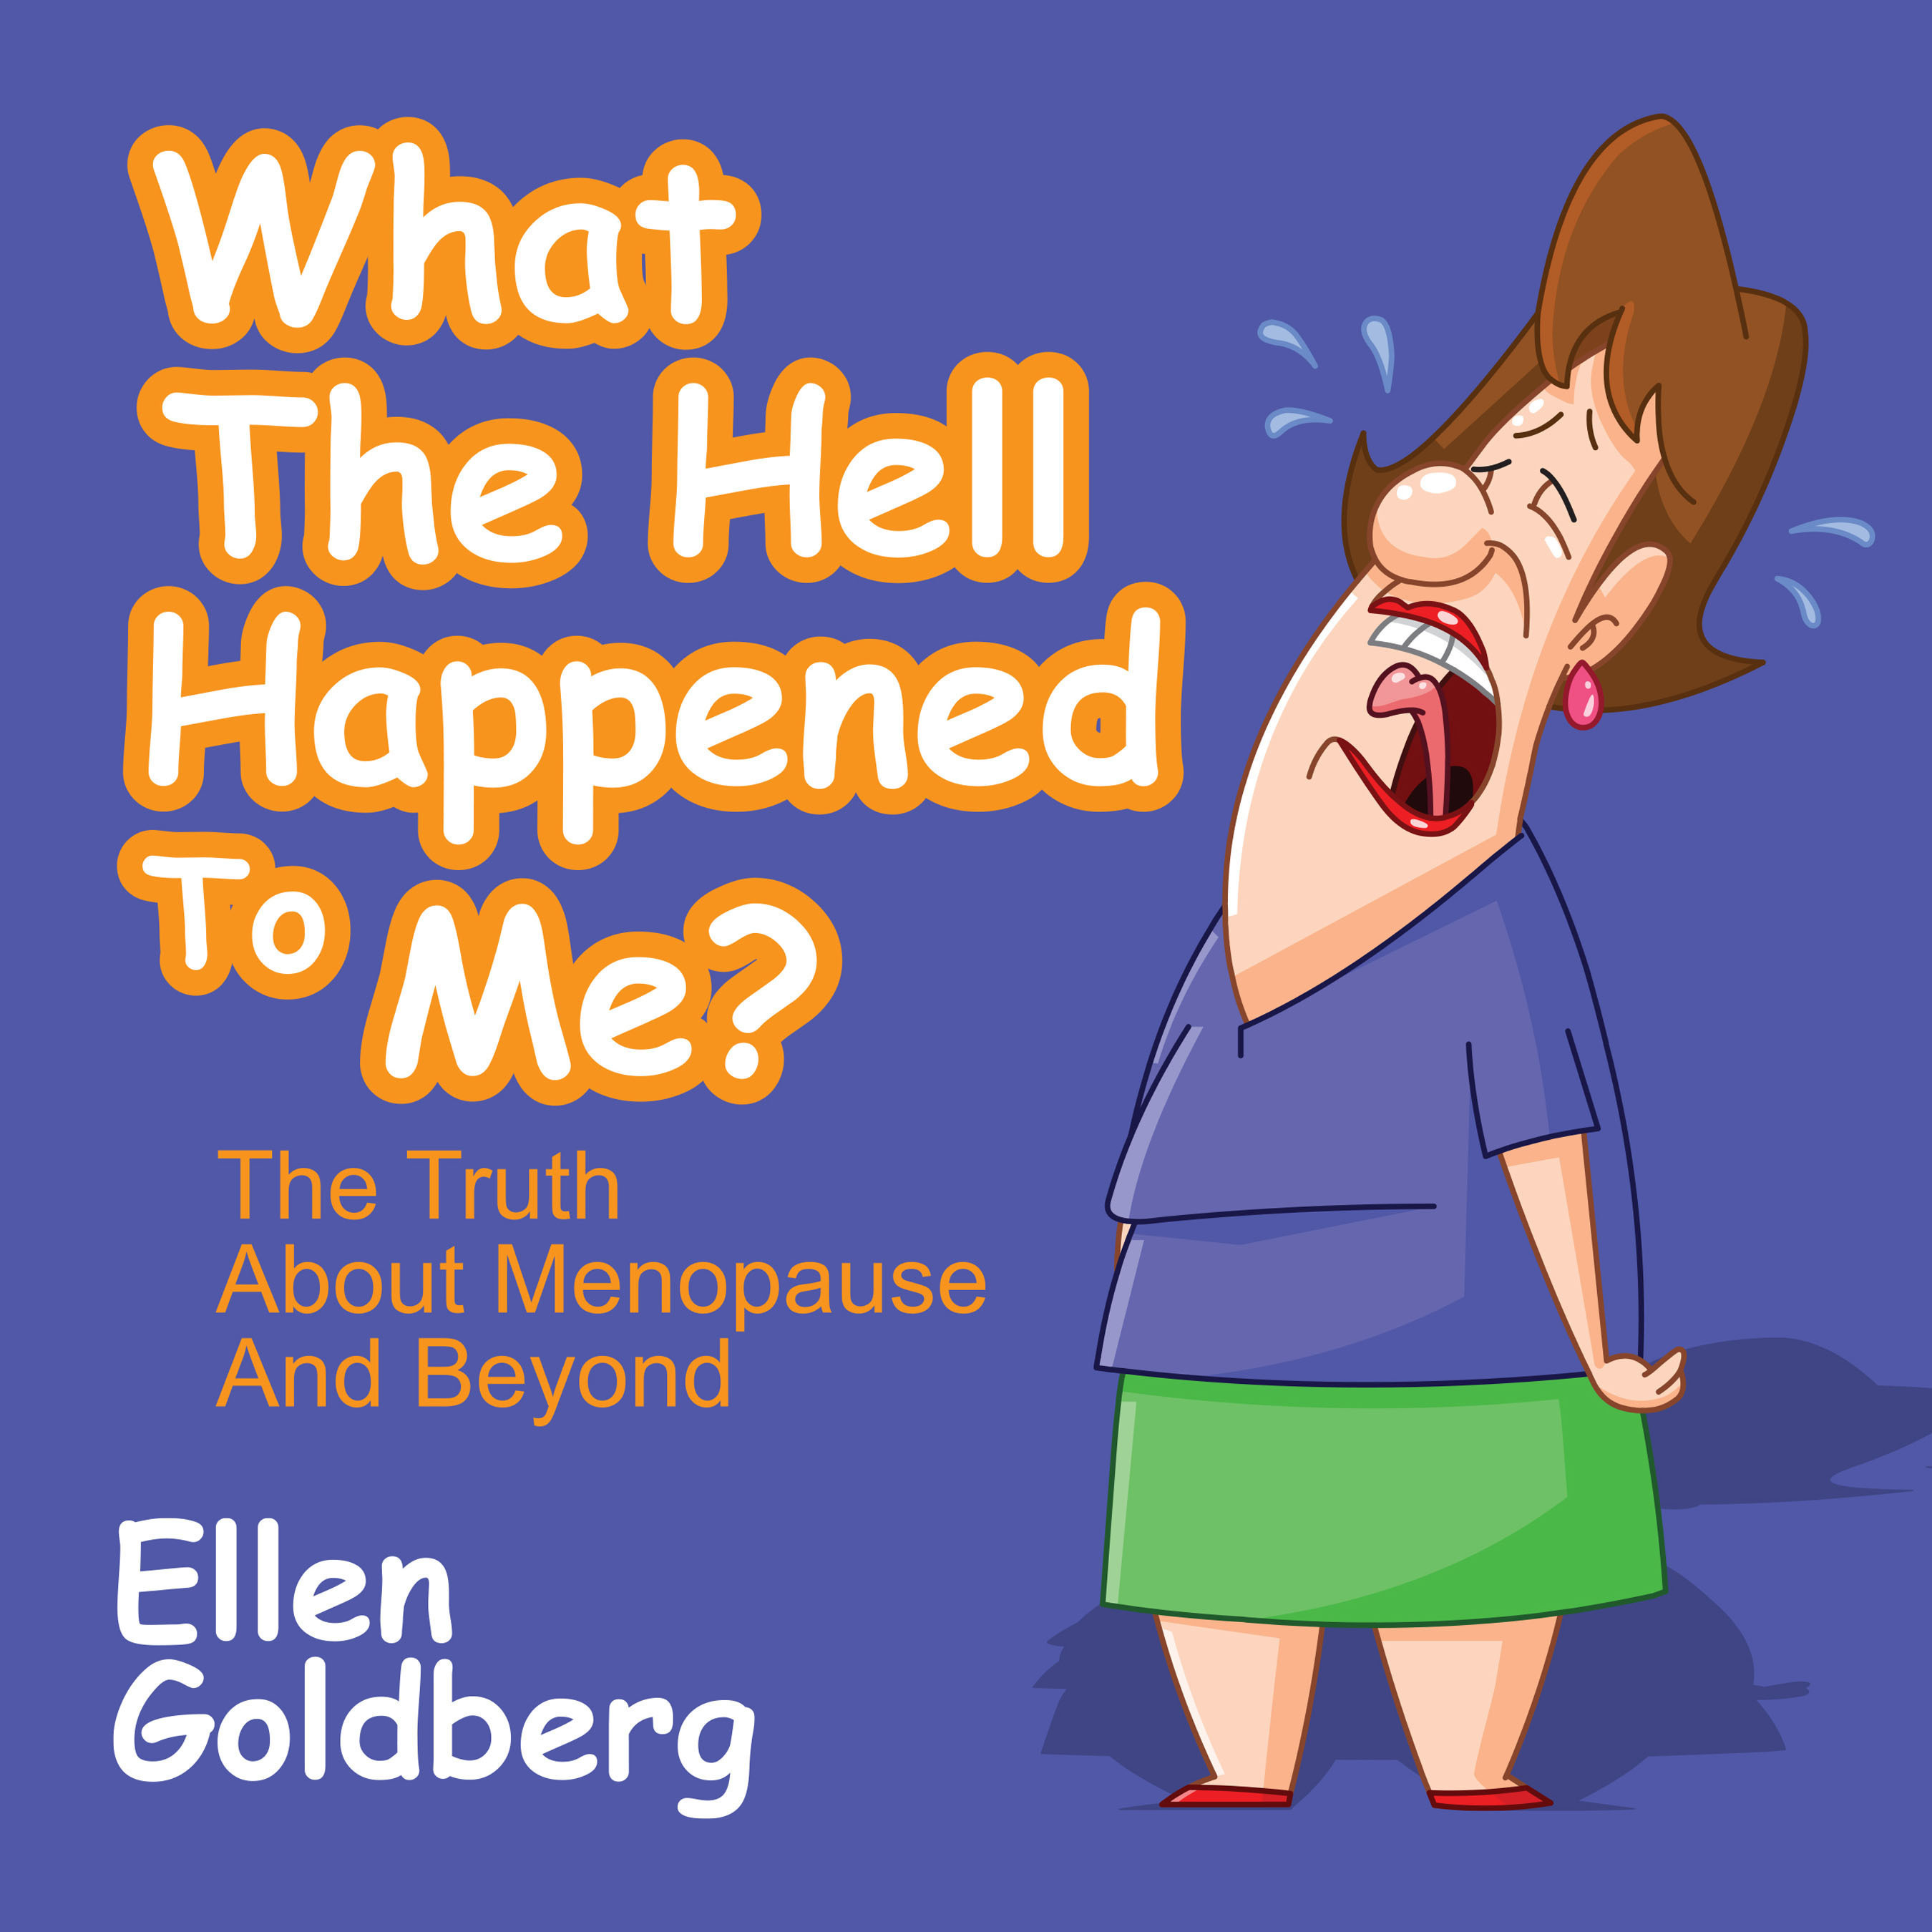 WHAT TH EHELL HAPPENED TO ME? THE TRUTH ABOUT MENOPAUSE AND BEYOND by Ellen Goldberg is Available Now